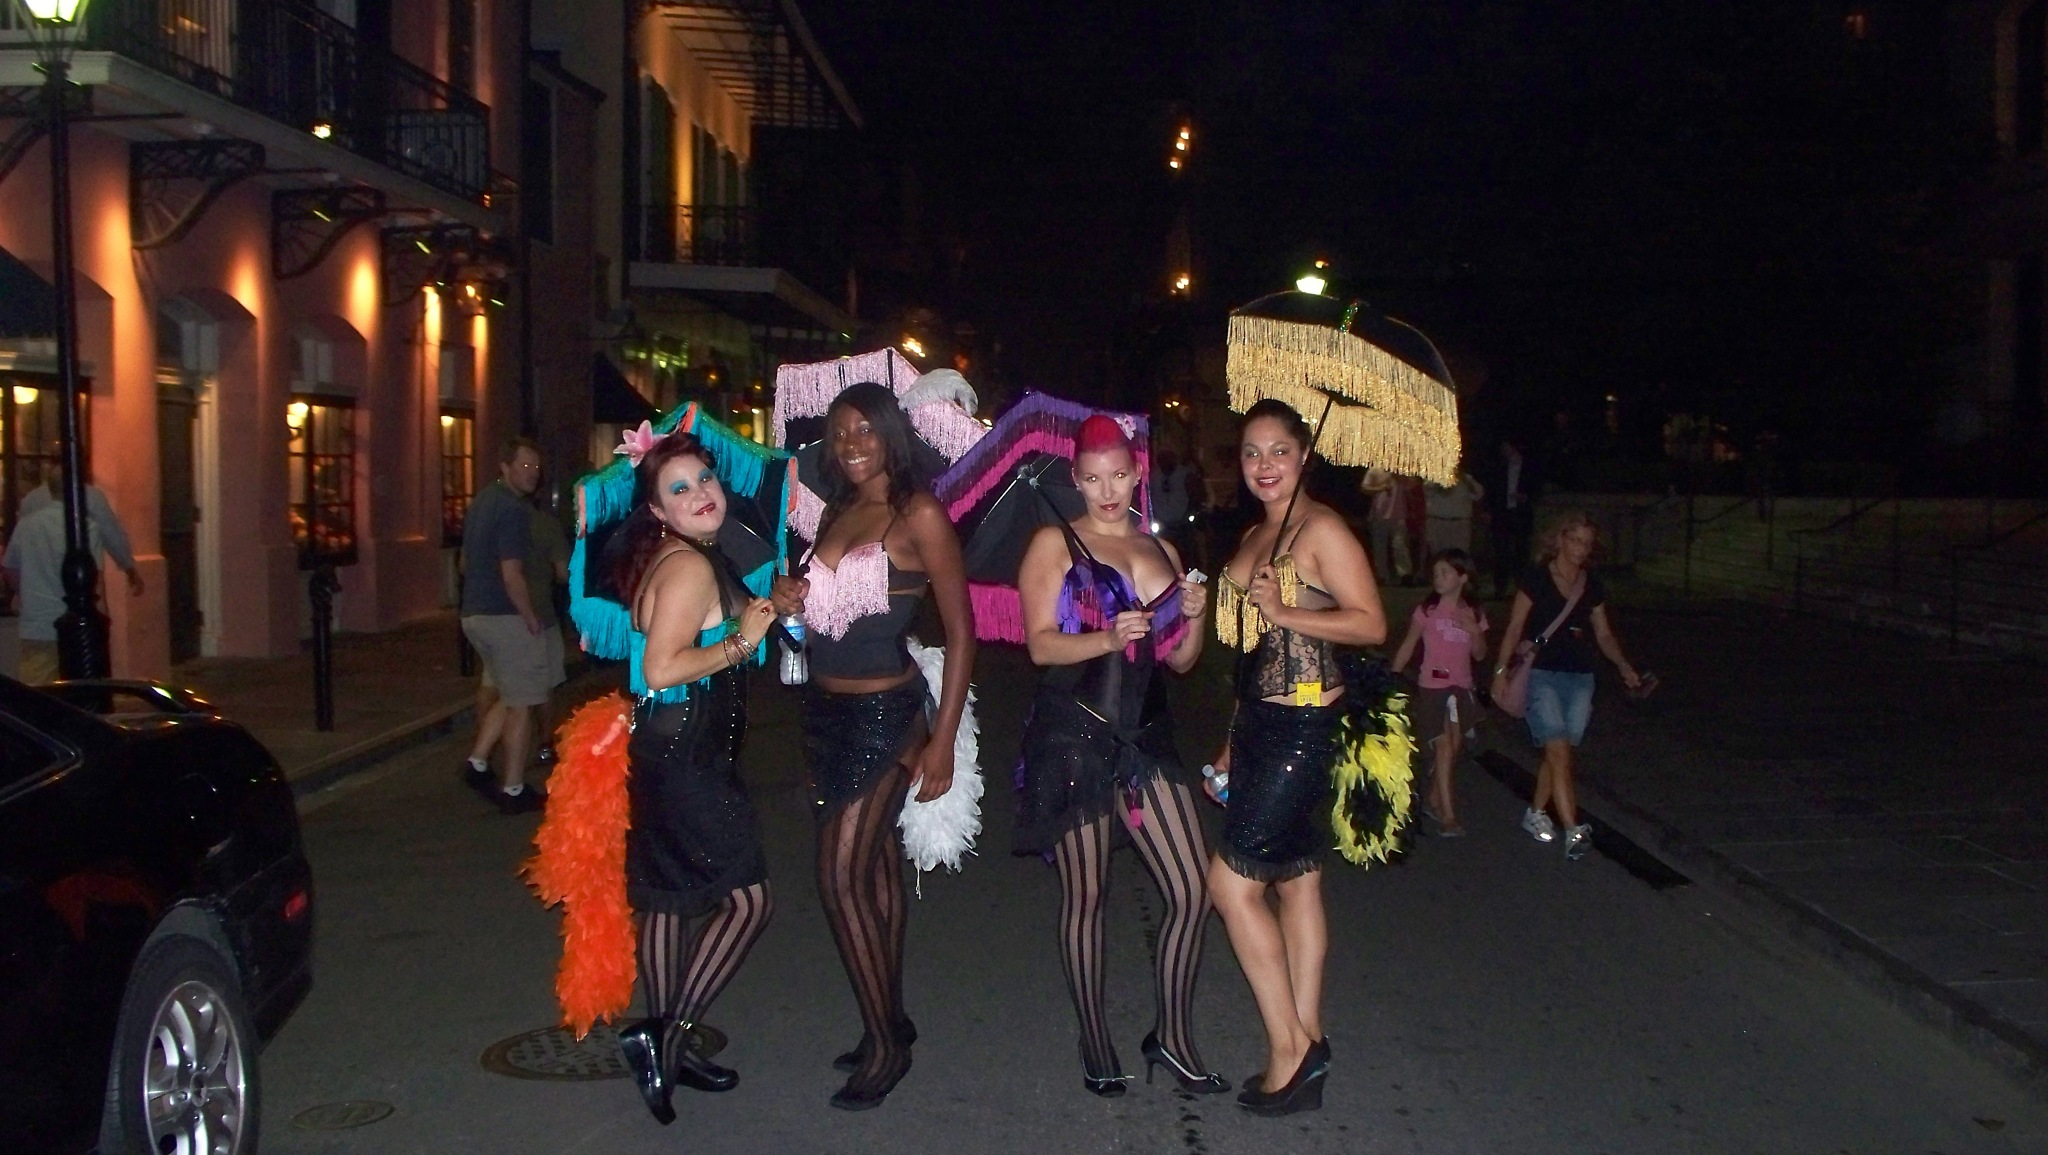 The girls of NOLA! by Tegrey